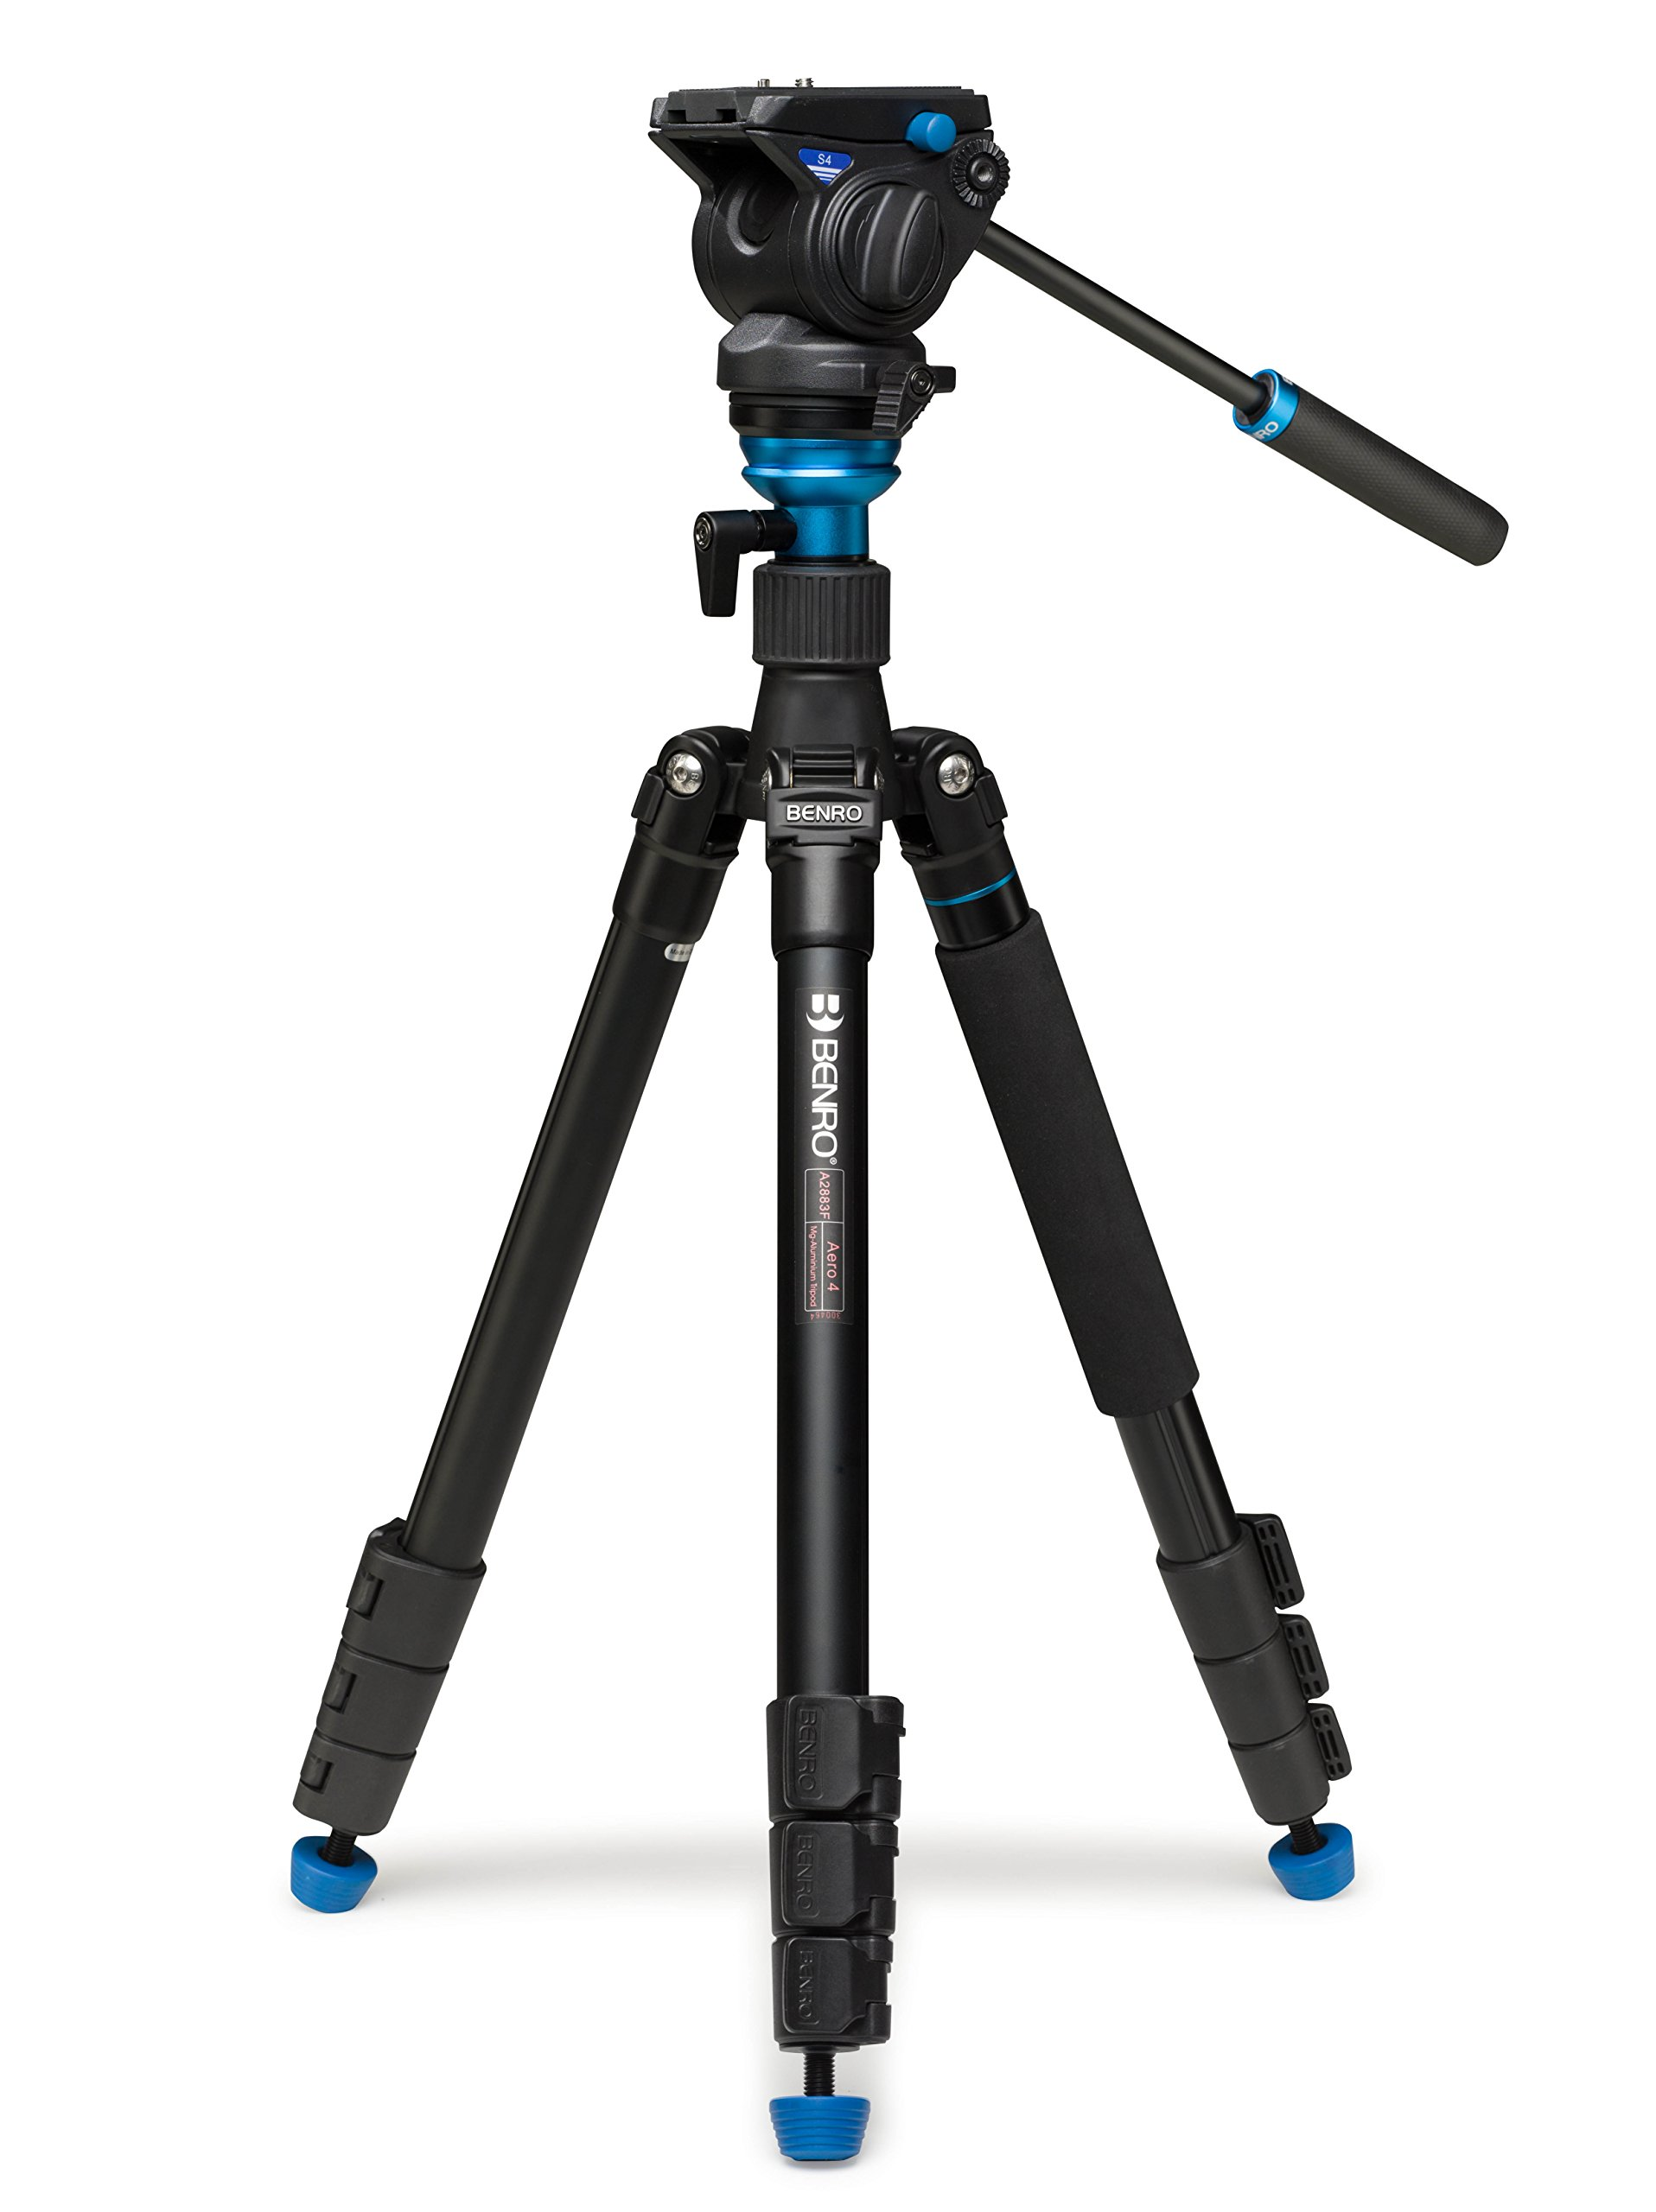 Benro Aero 4 Travel Angel Video Tripod Kit (A2883FS4)